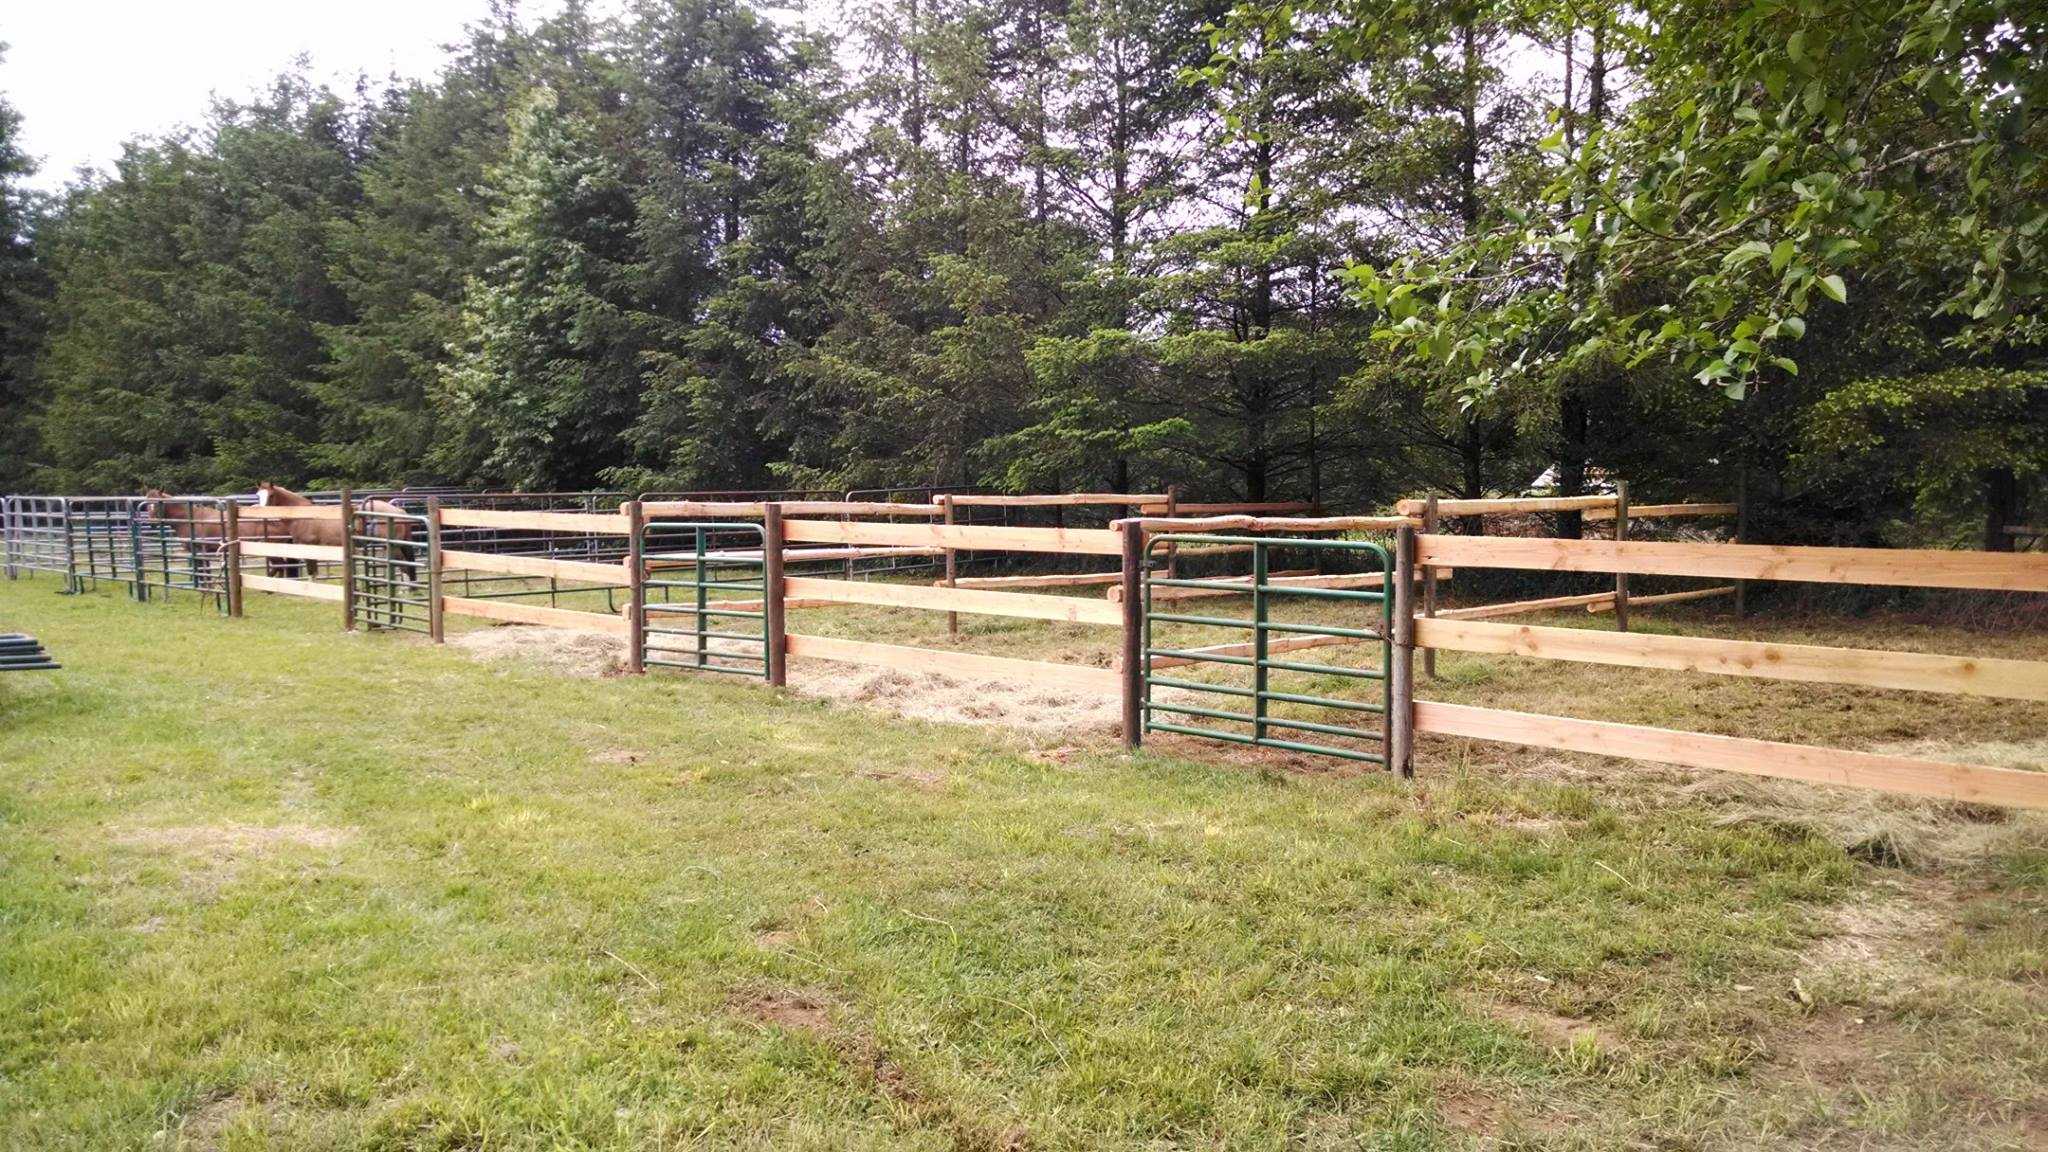 The new paddocks for Mossyrock members.